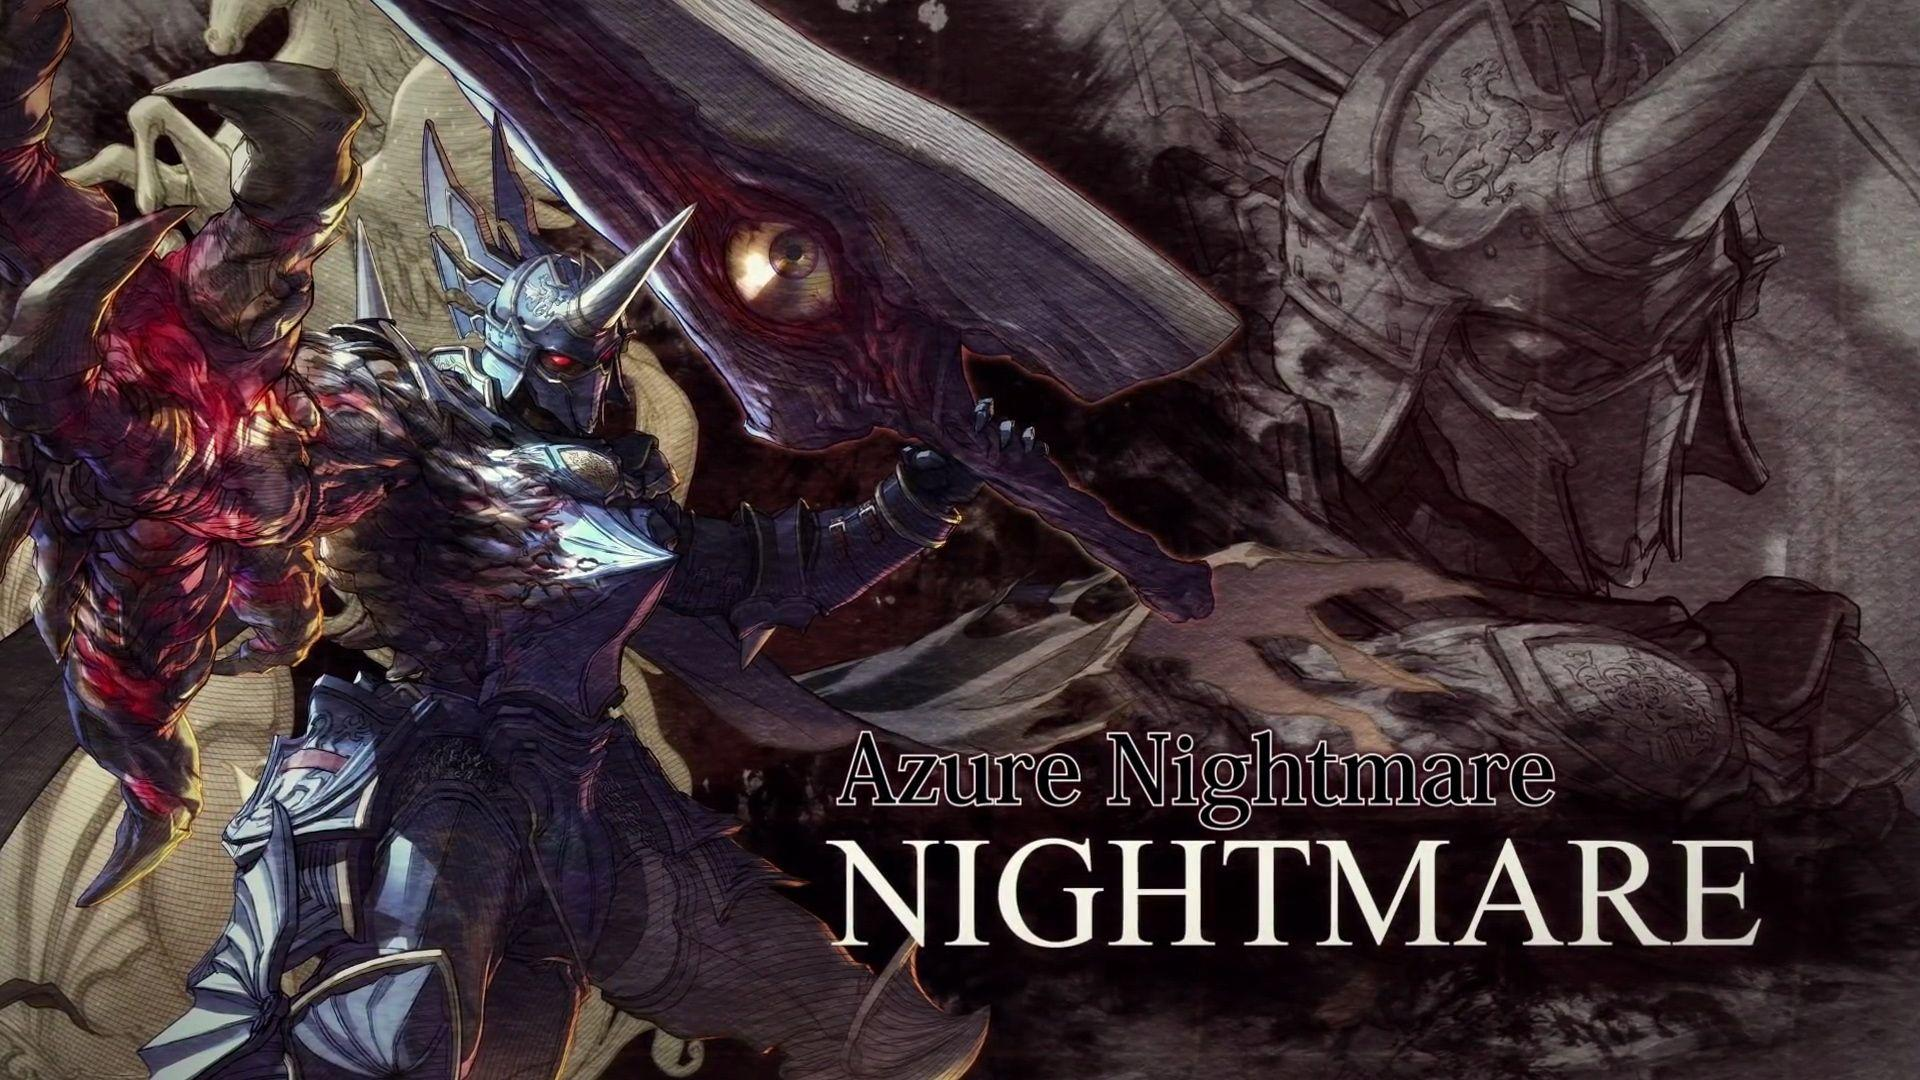 Nightmare. Wallpapers from Soulcalibur VI